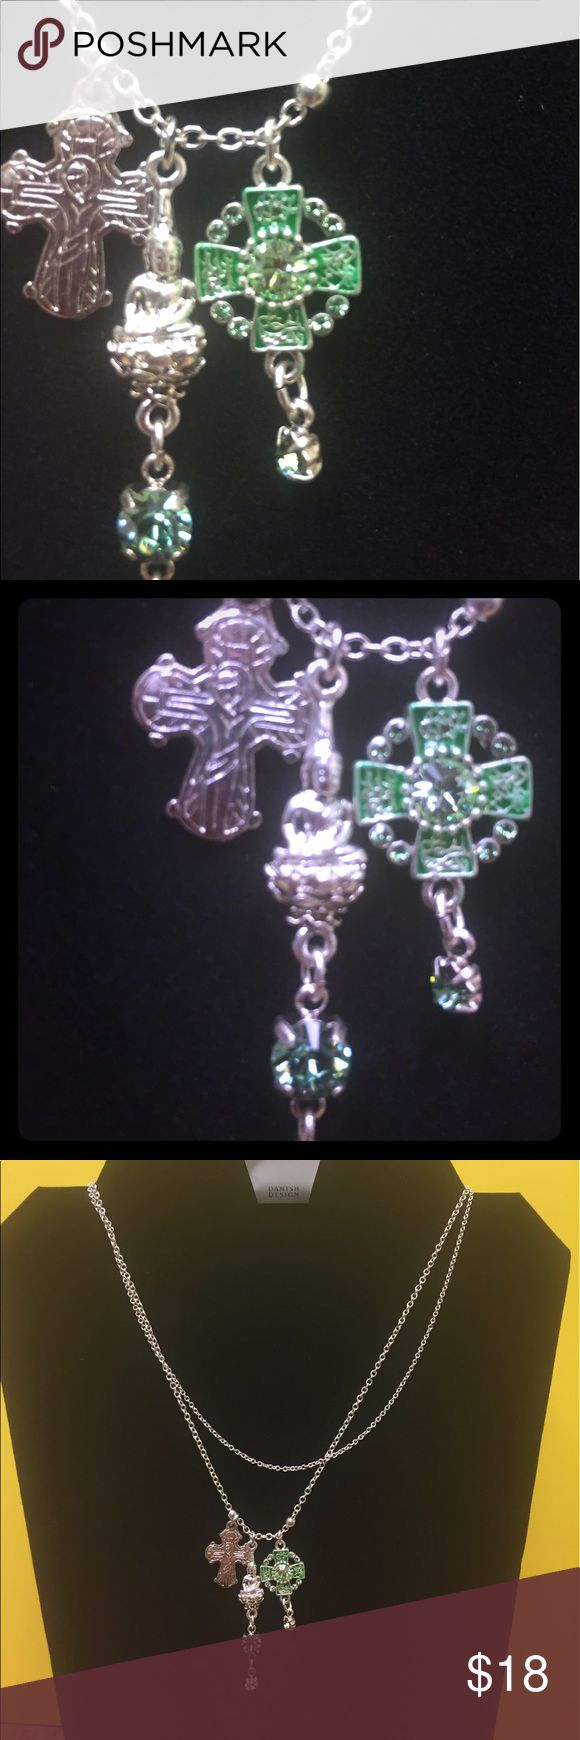 NWT Triple Religion Charm Necklace by Pilgrim This is a triple religion Charm Necklace. The green is absolutely gorgeous. Double chain sets this necklace nicely. Pilgrim Jewelry Necklaces